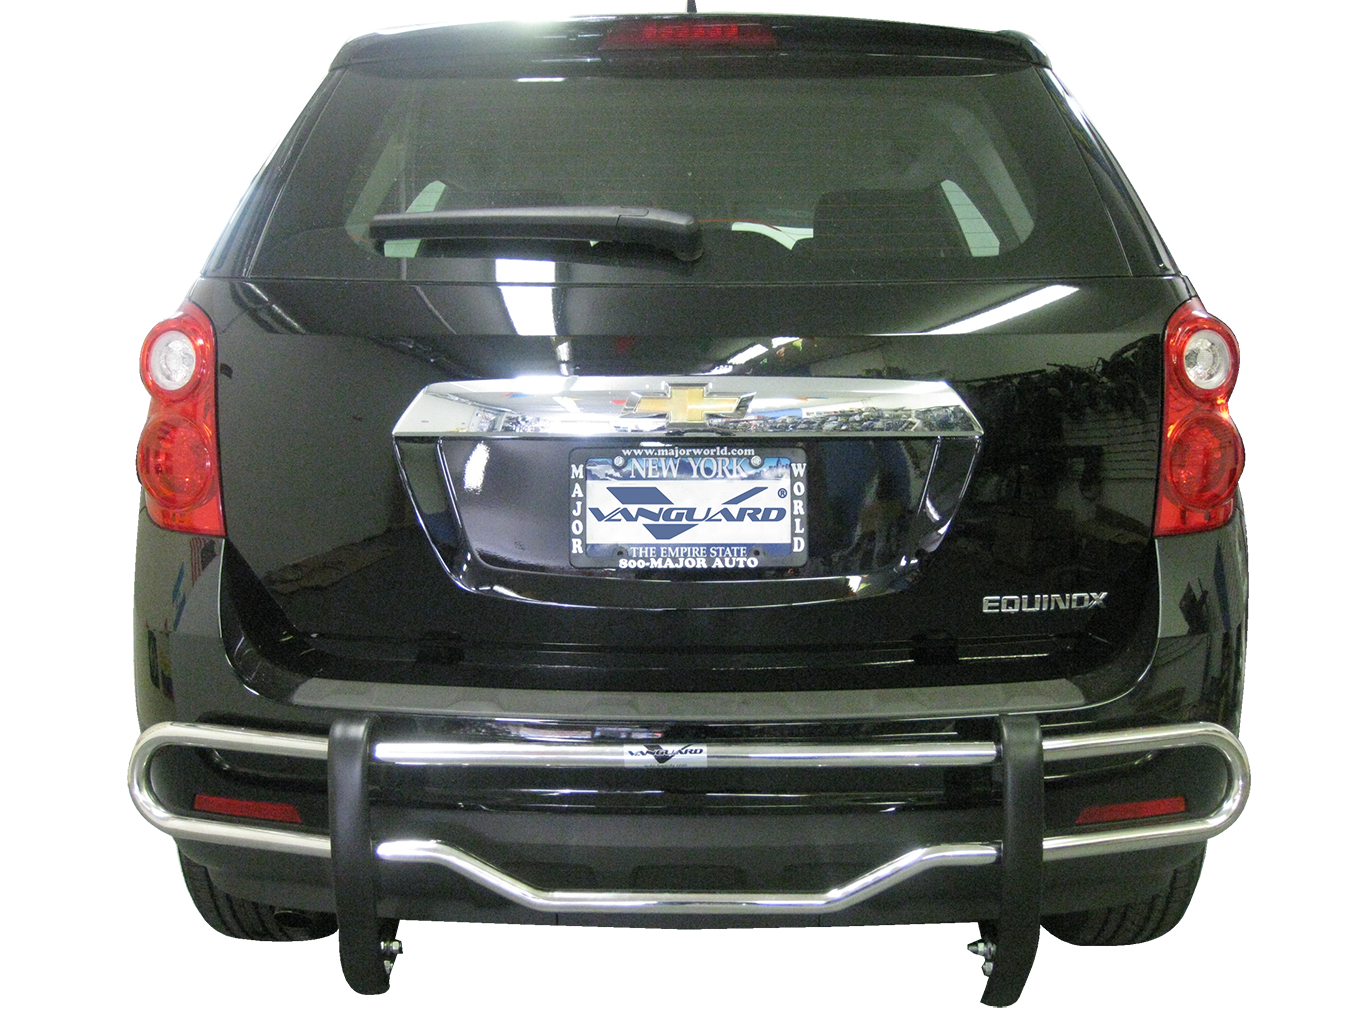 VGRBG-0558SS Stainless Steel Double Tube Style Rear Bumper Guard